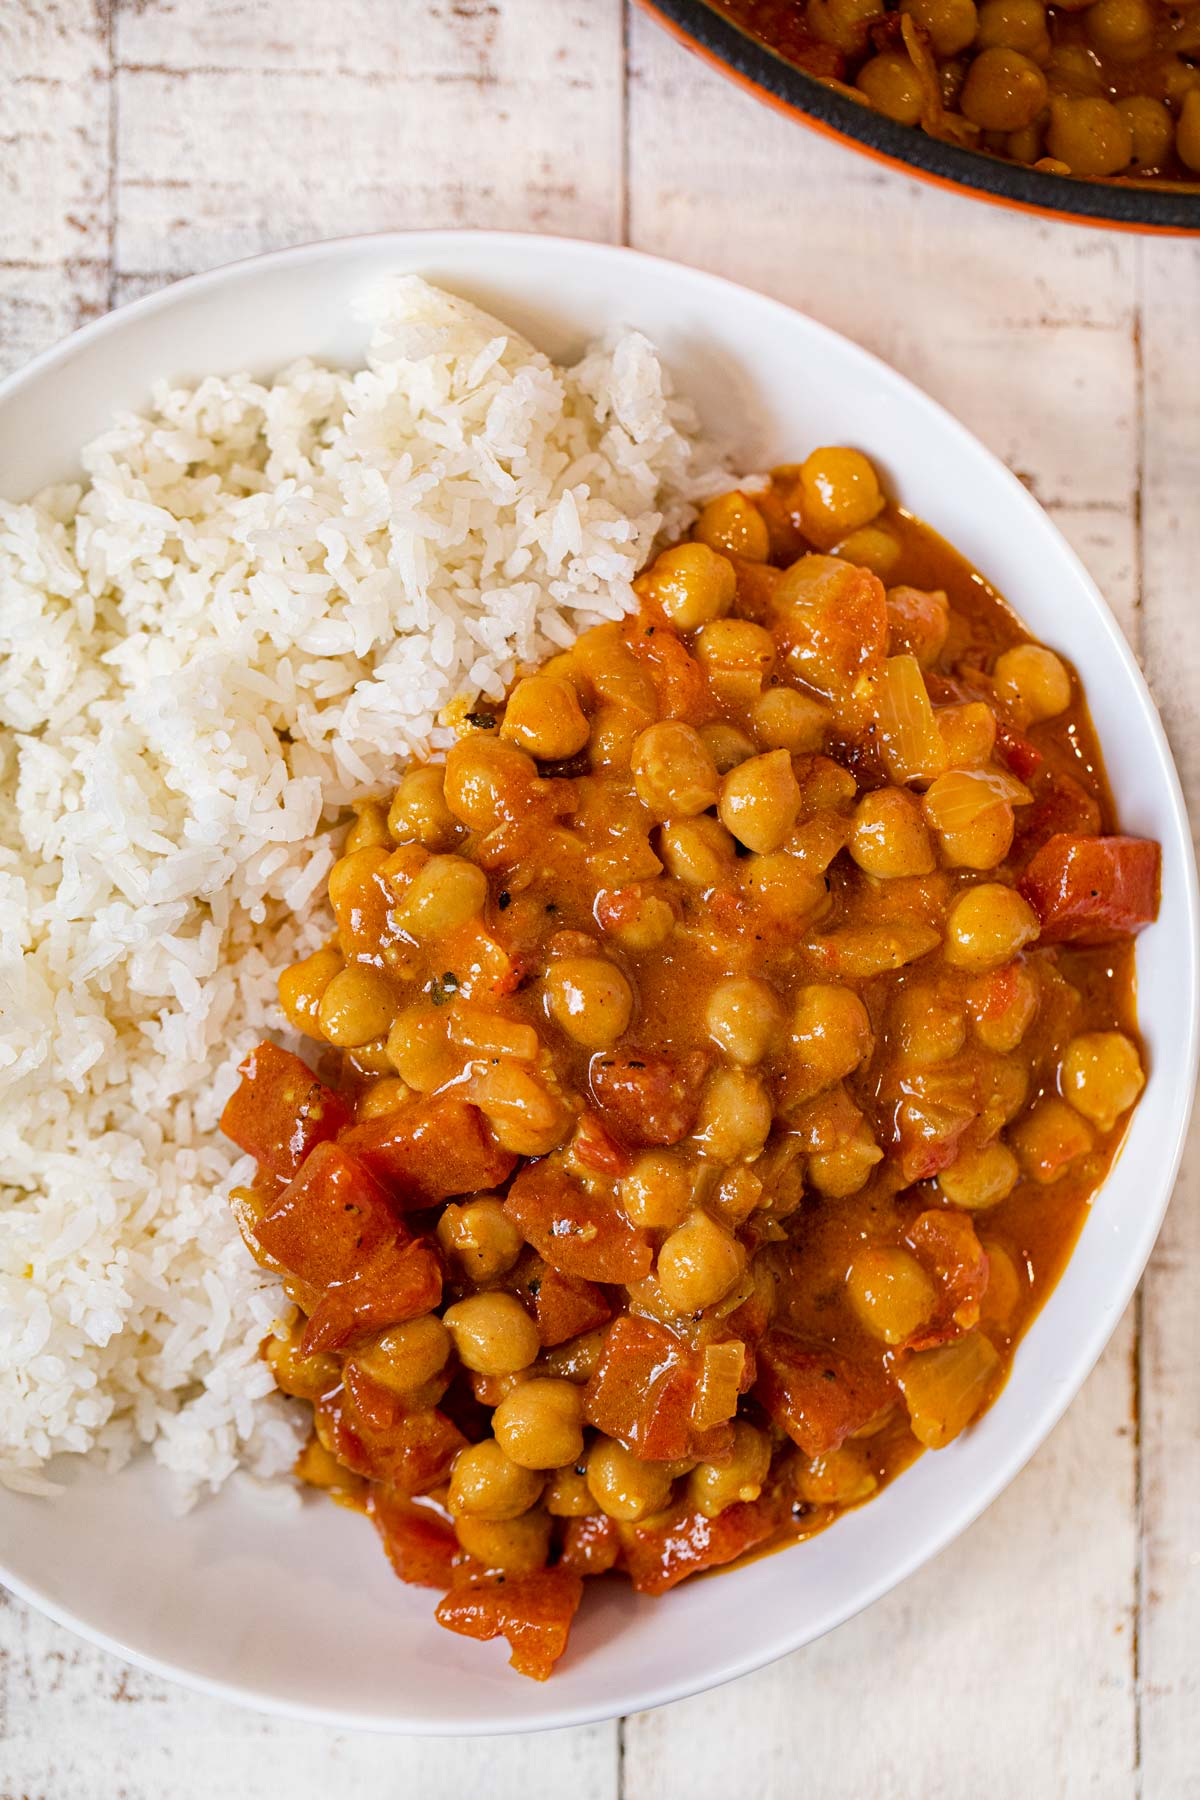 Bowl of Coconut Chickpea Curry with steamed rice